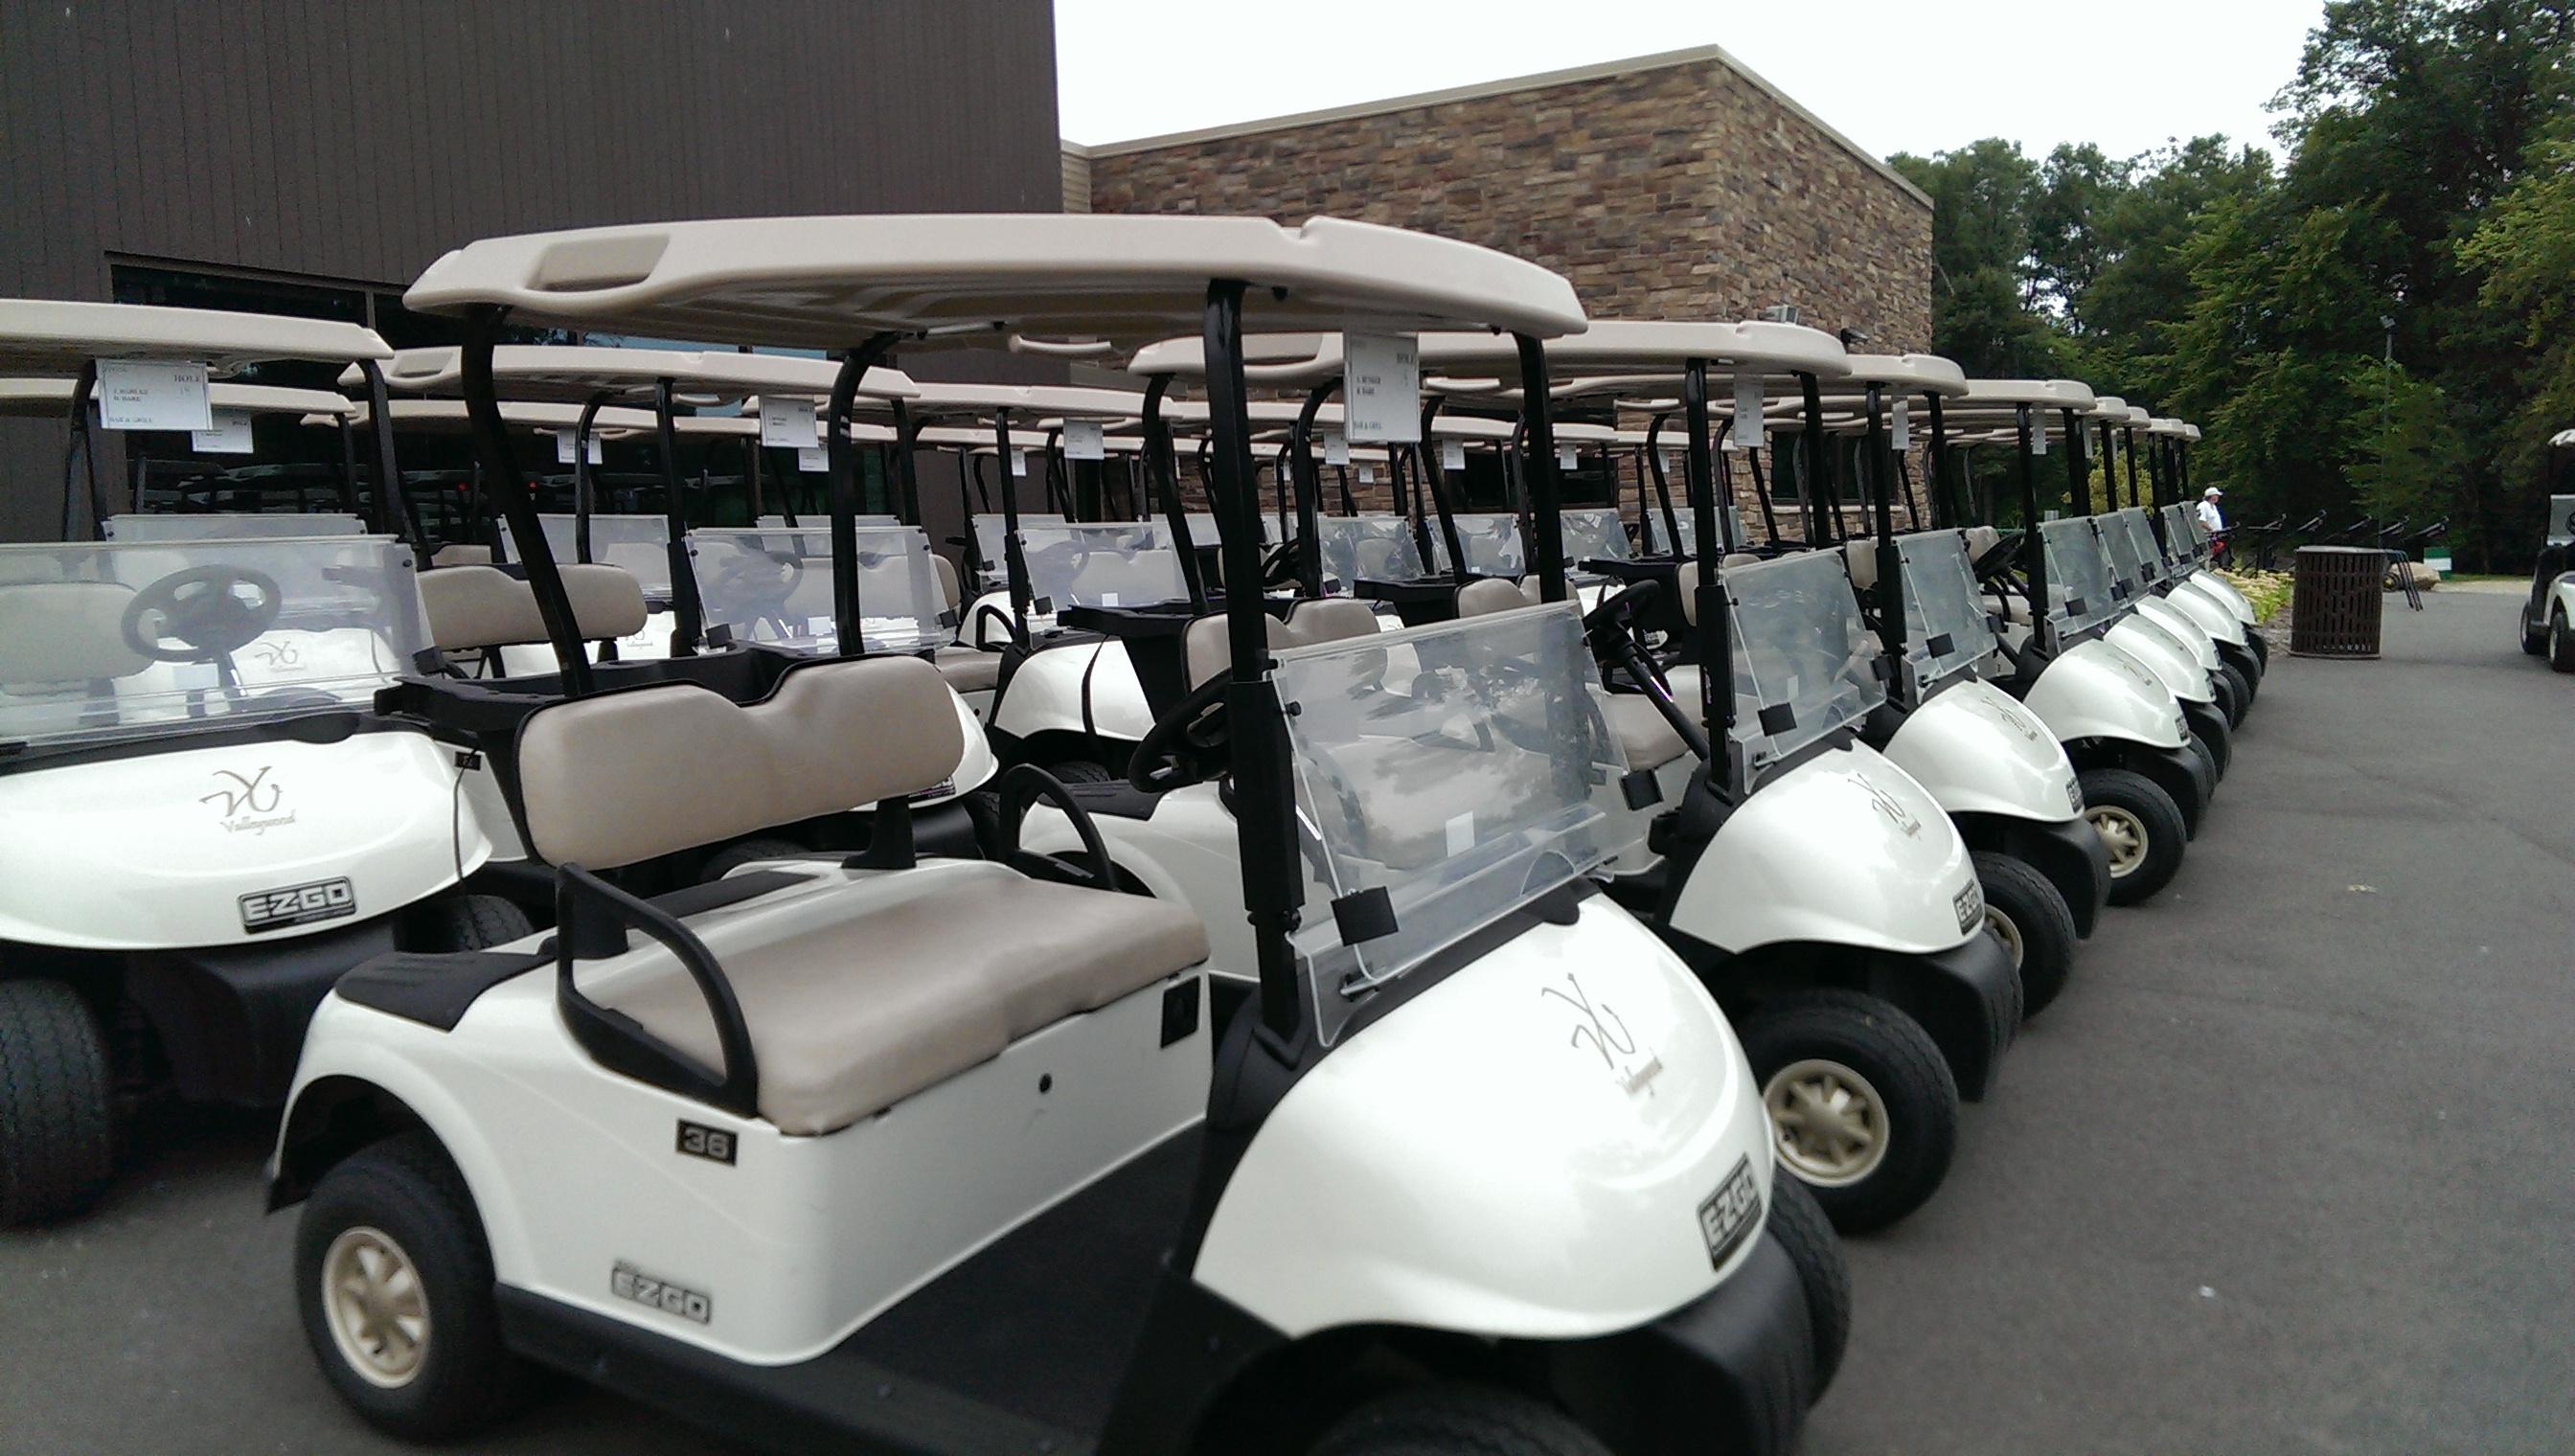 golf carts lined up for a tournament